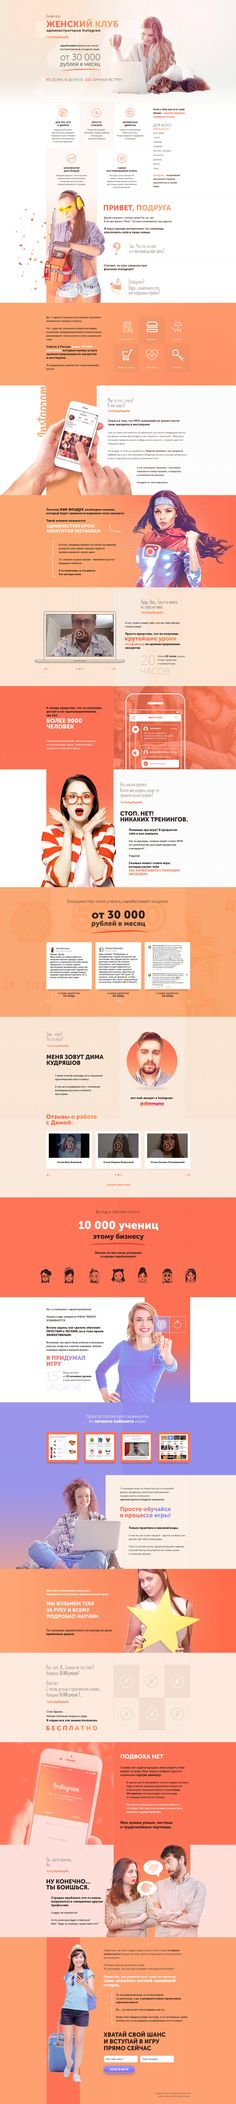 Ознакомьтесь с моим проектом @Behance: «Landing page» https://www.behance.net/gallery/59478369/Landing-page